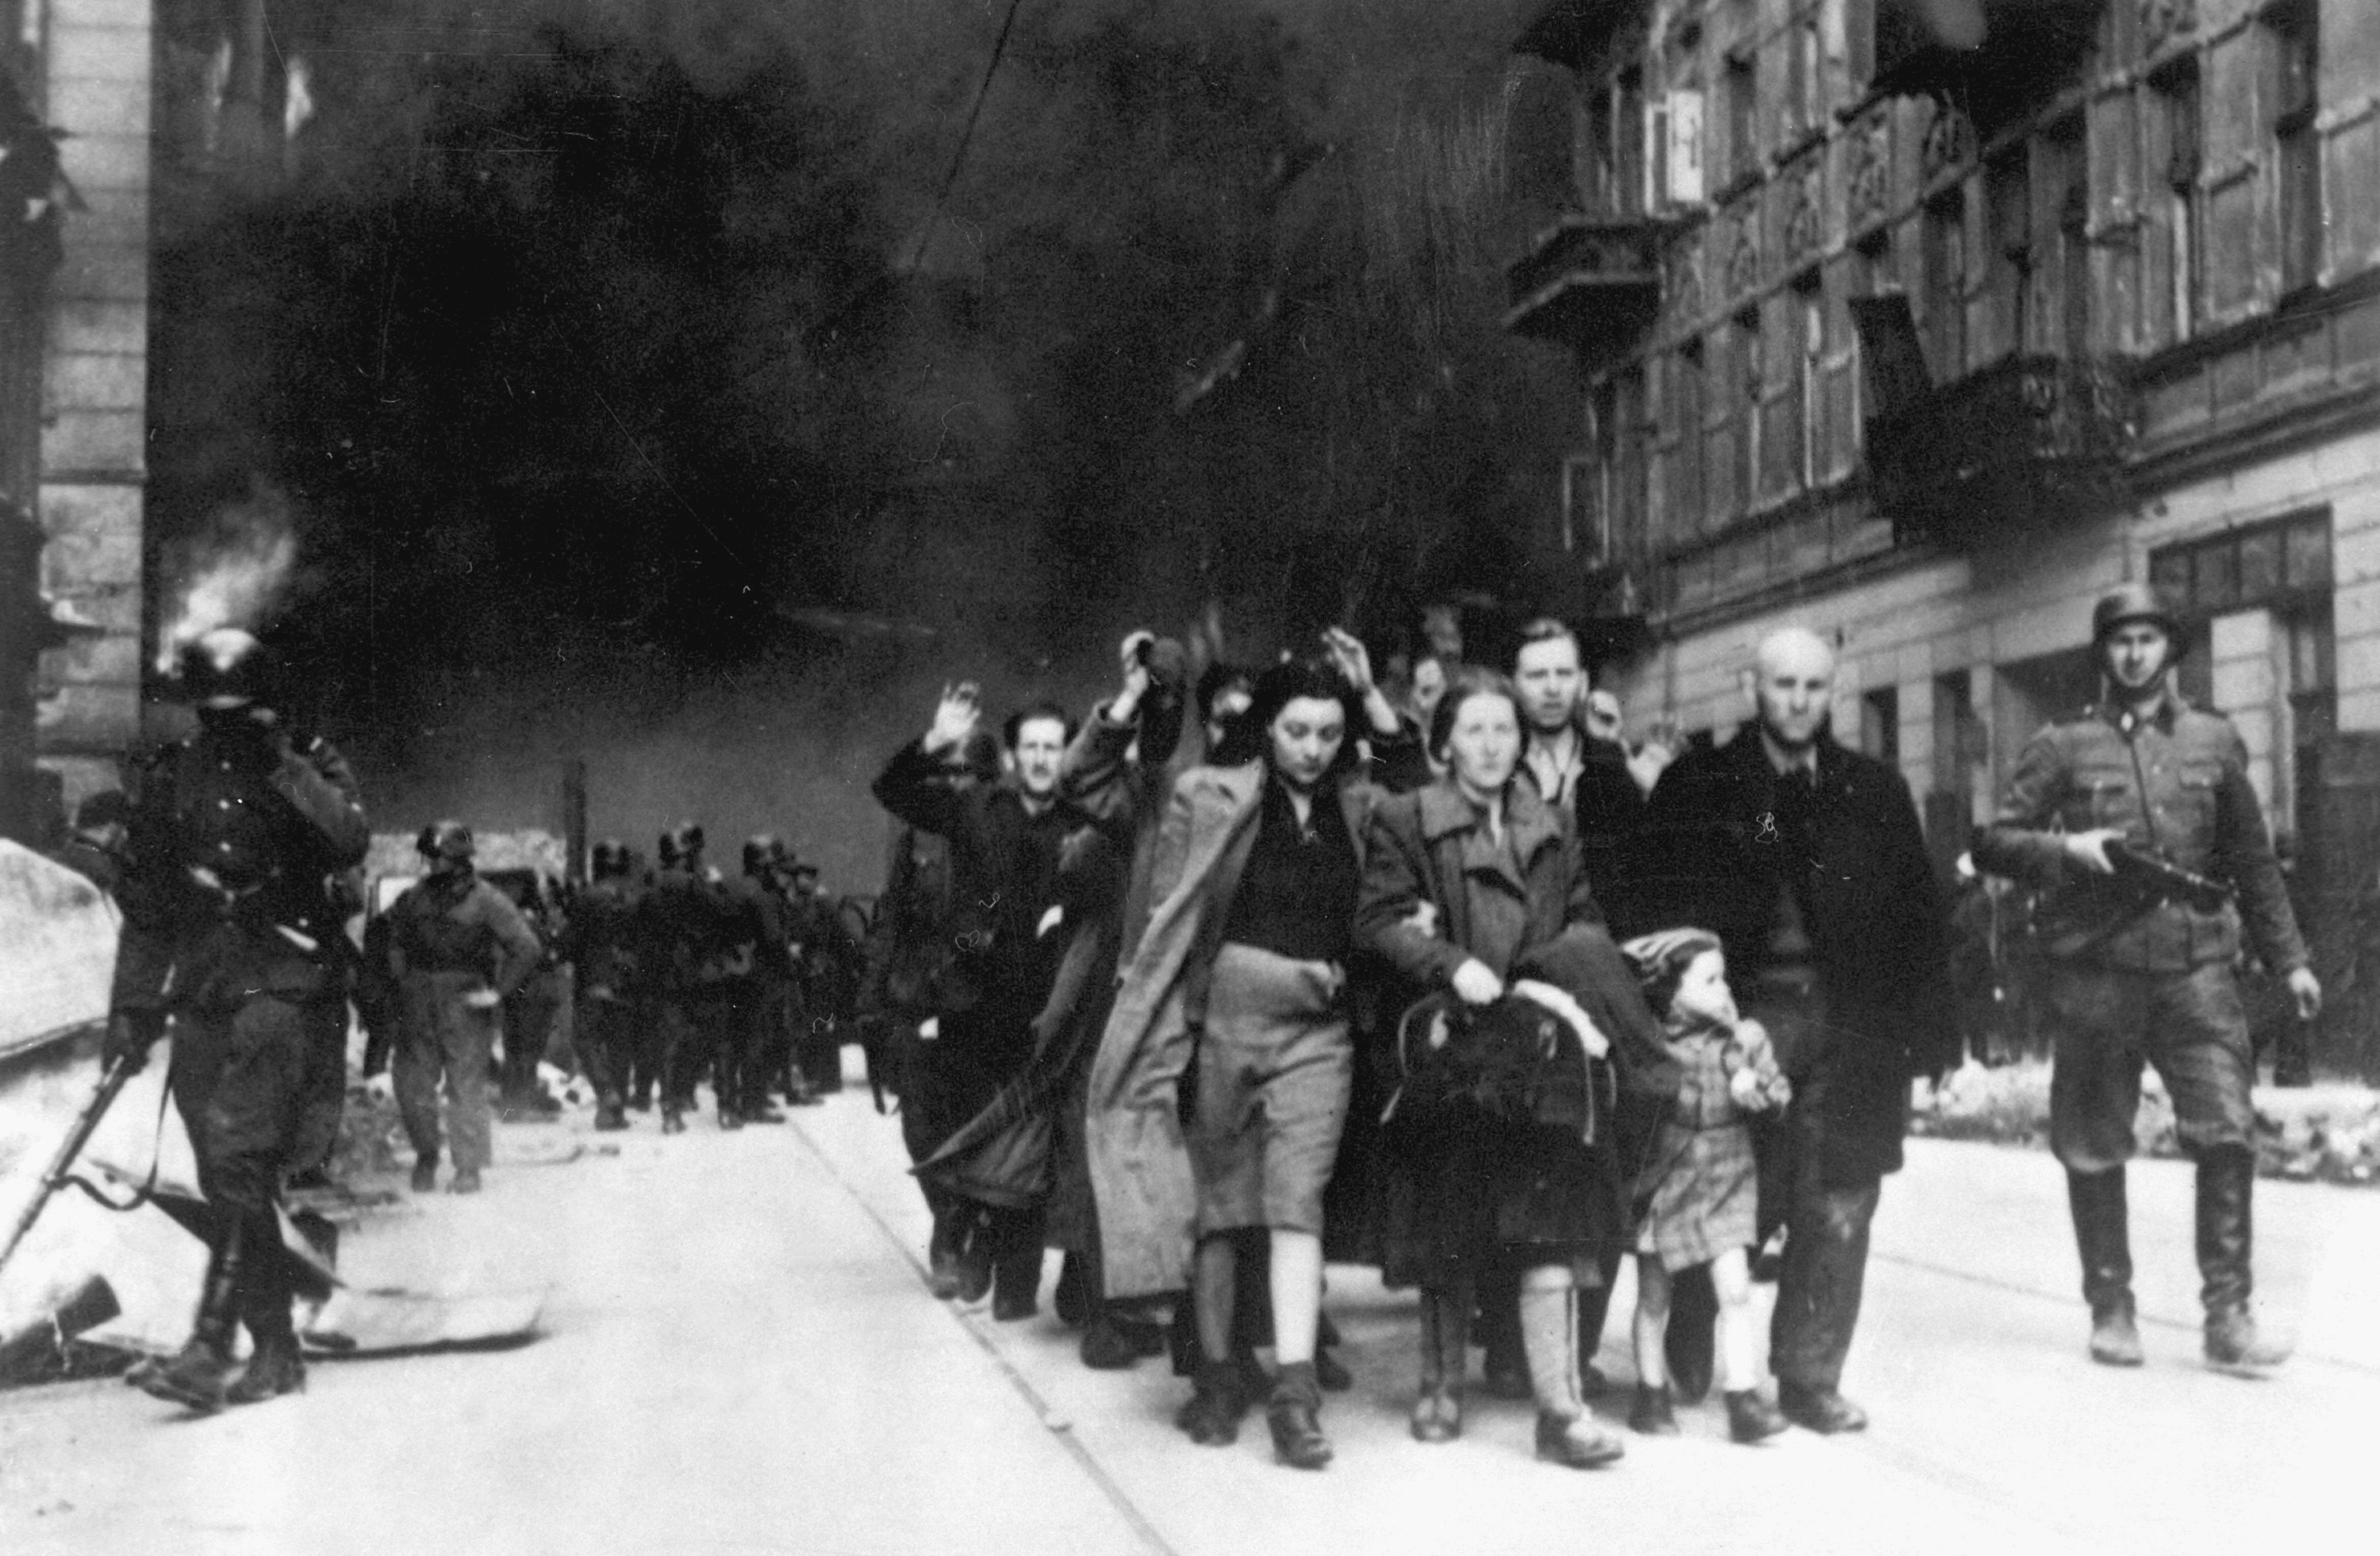 Stroop Report - Warsaw Ghetto Uprising 09